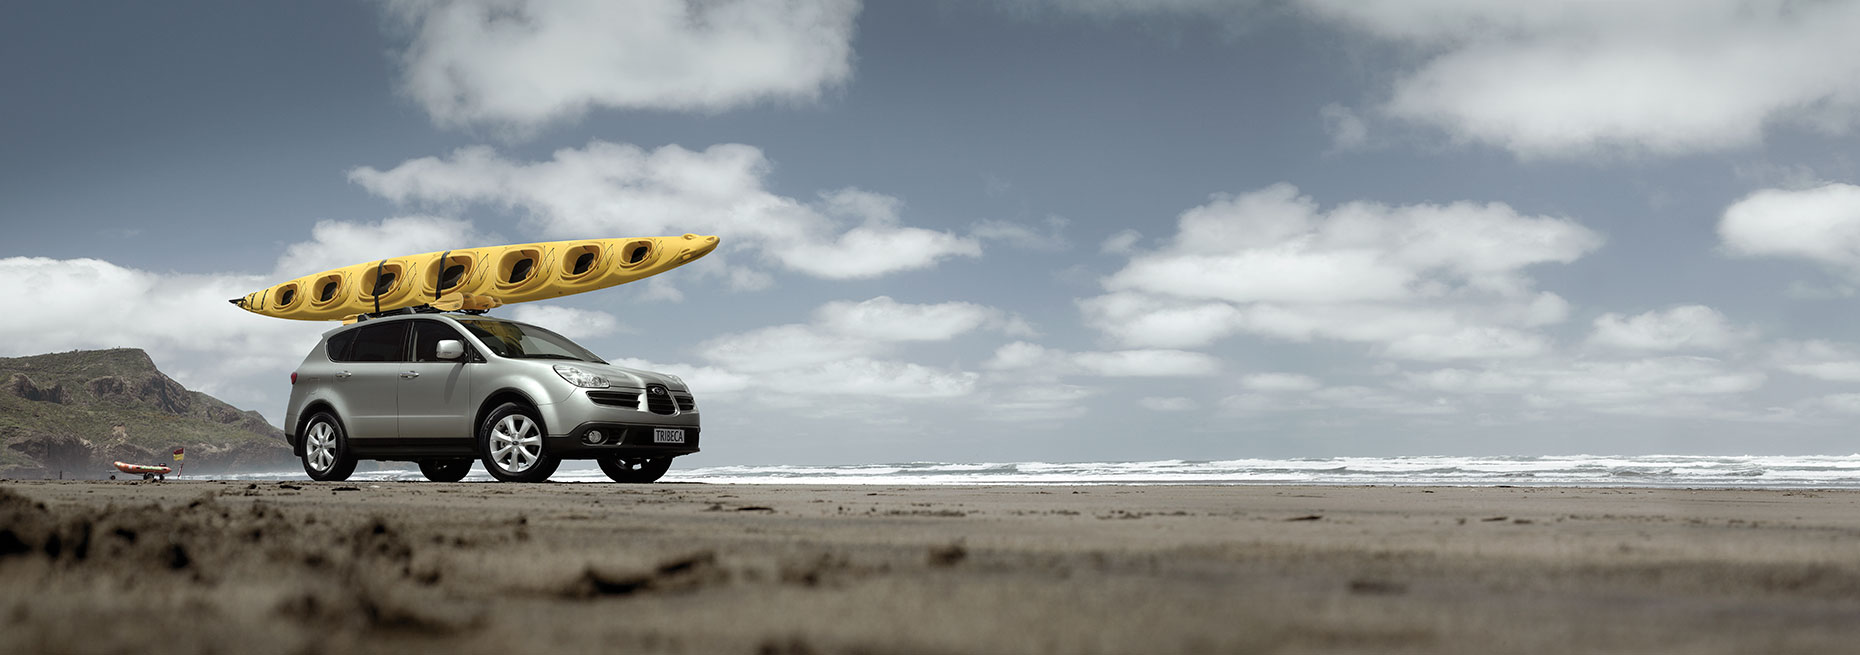 SUBARU_CANOE_WEBSITE.jpg